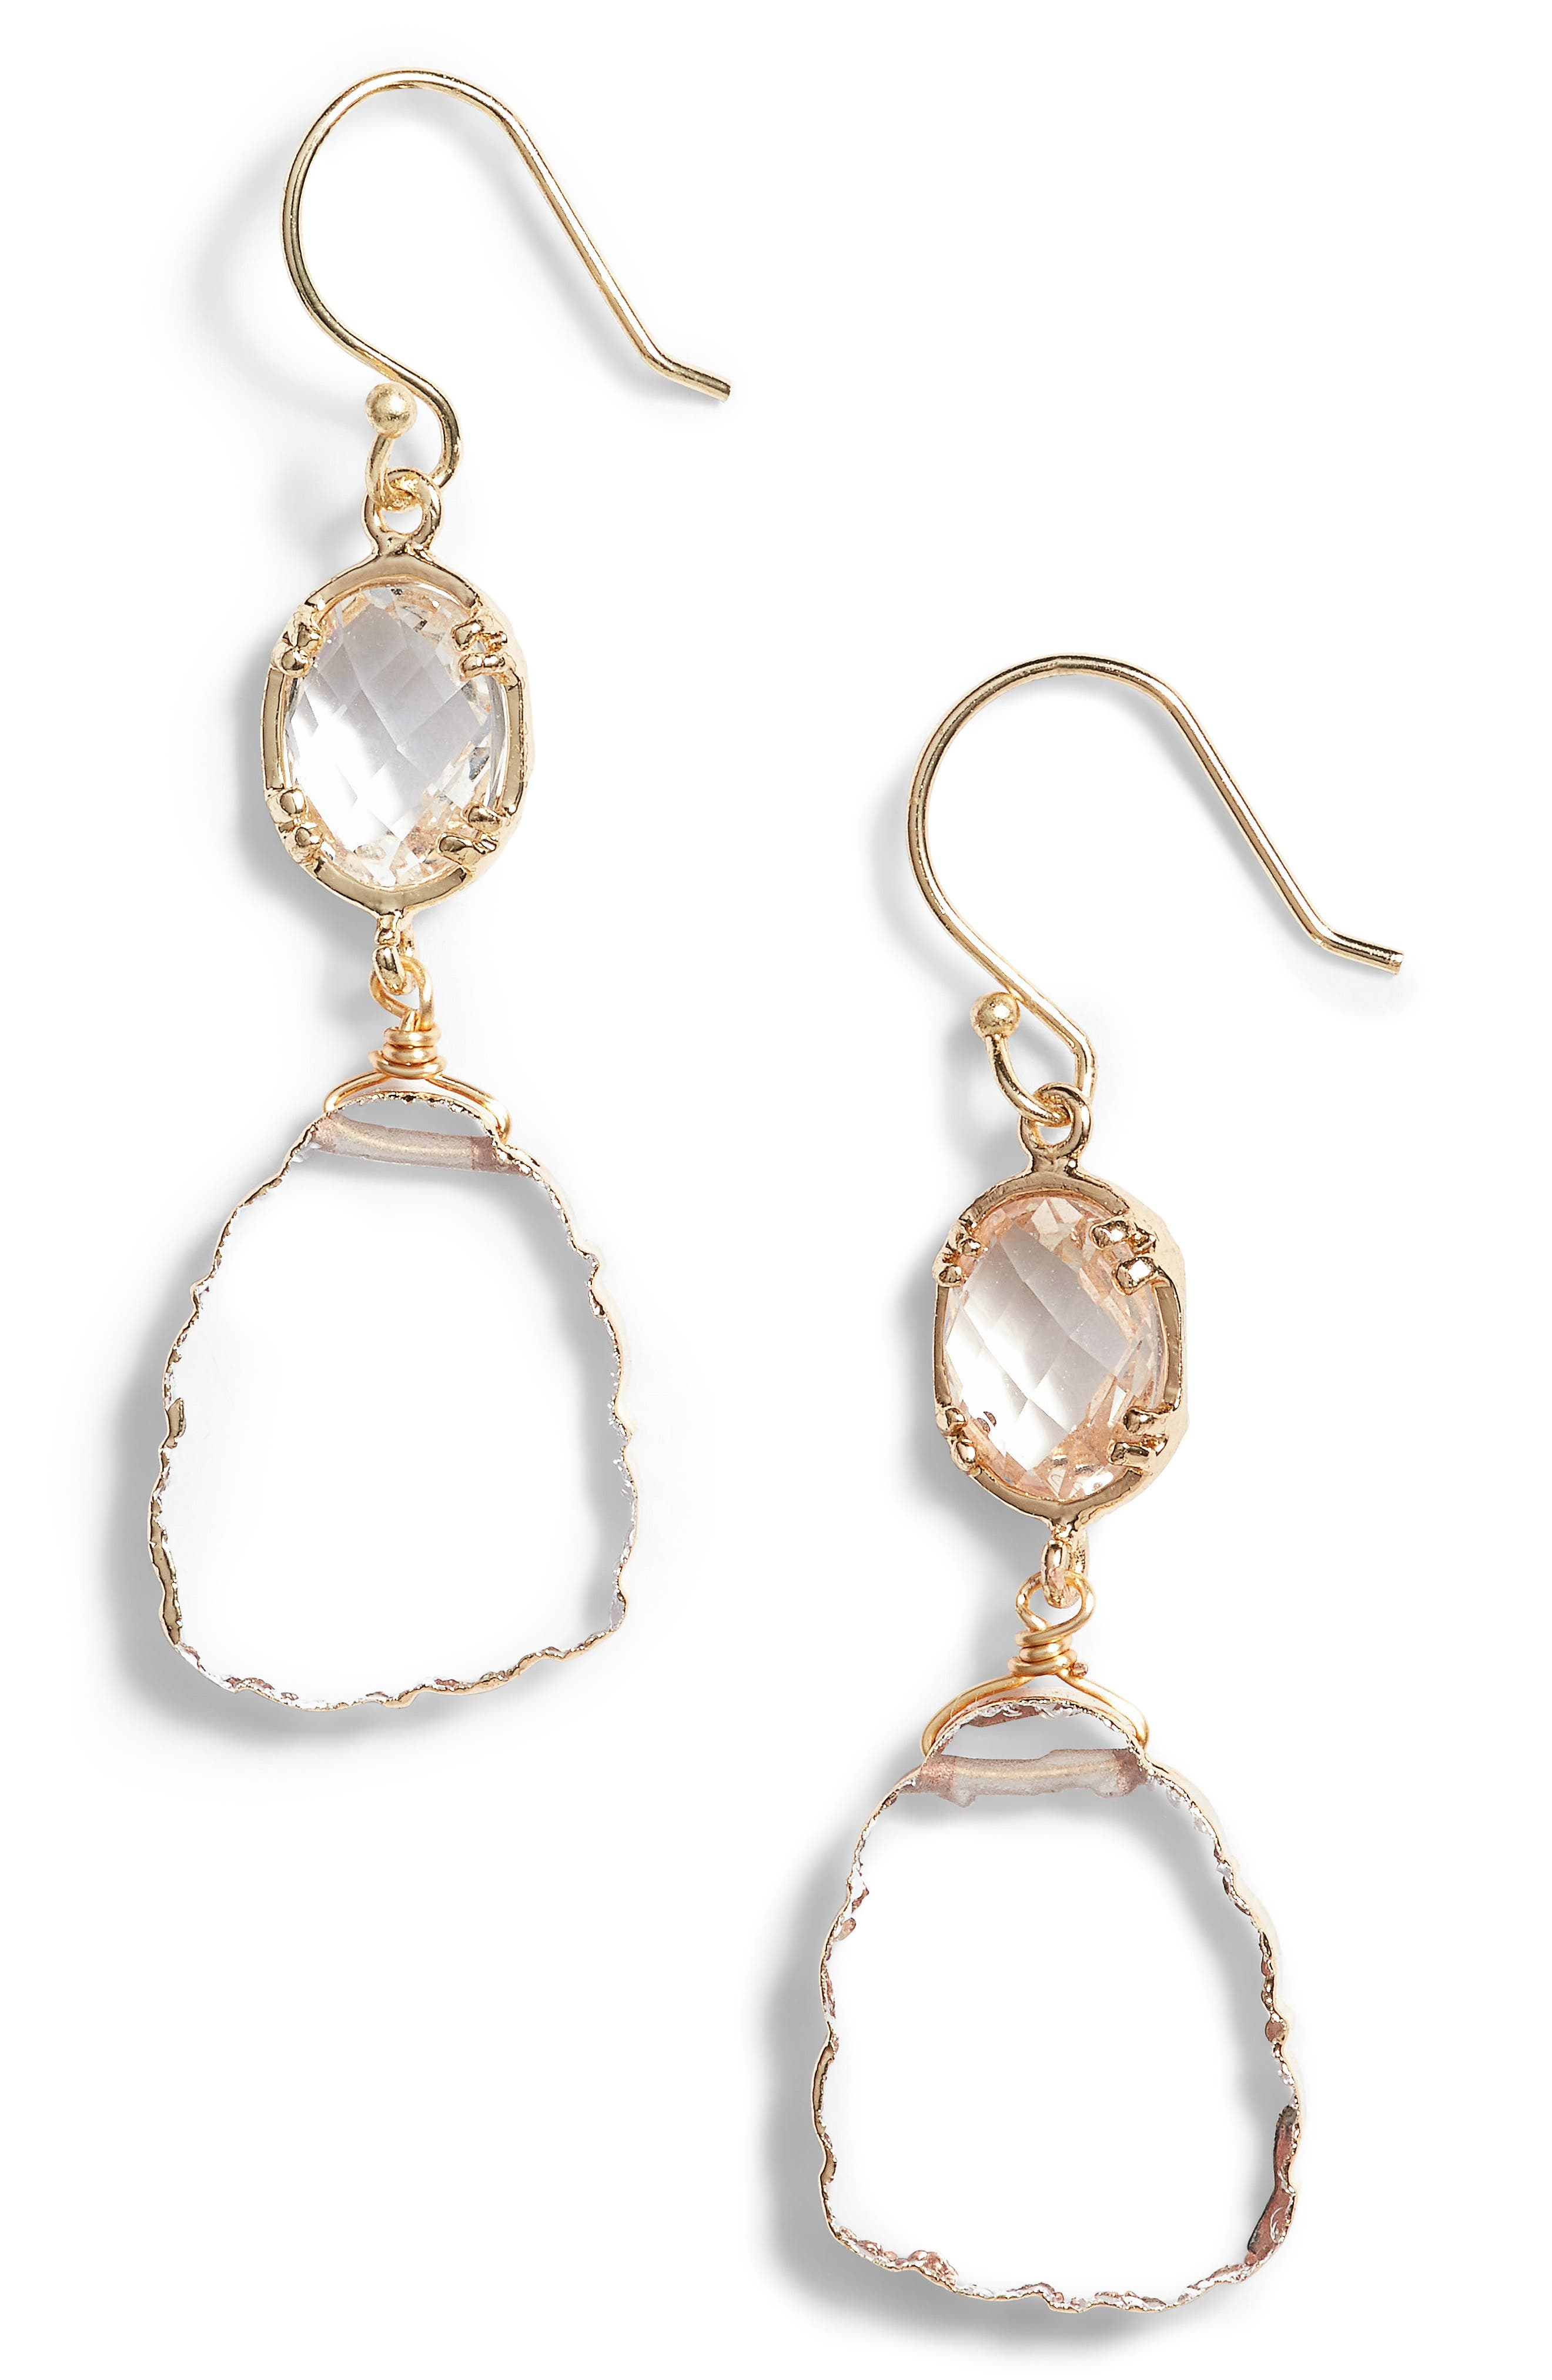 Double Drop Earrings,                             Main thumbnail 1, color,                             Gold/ Clear